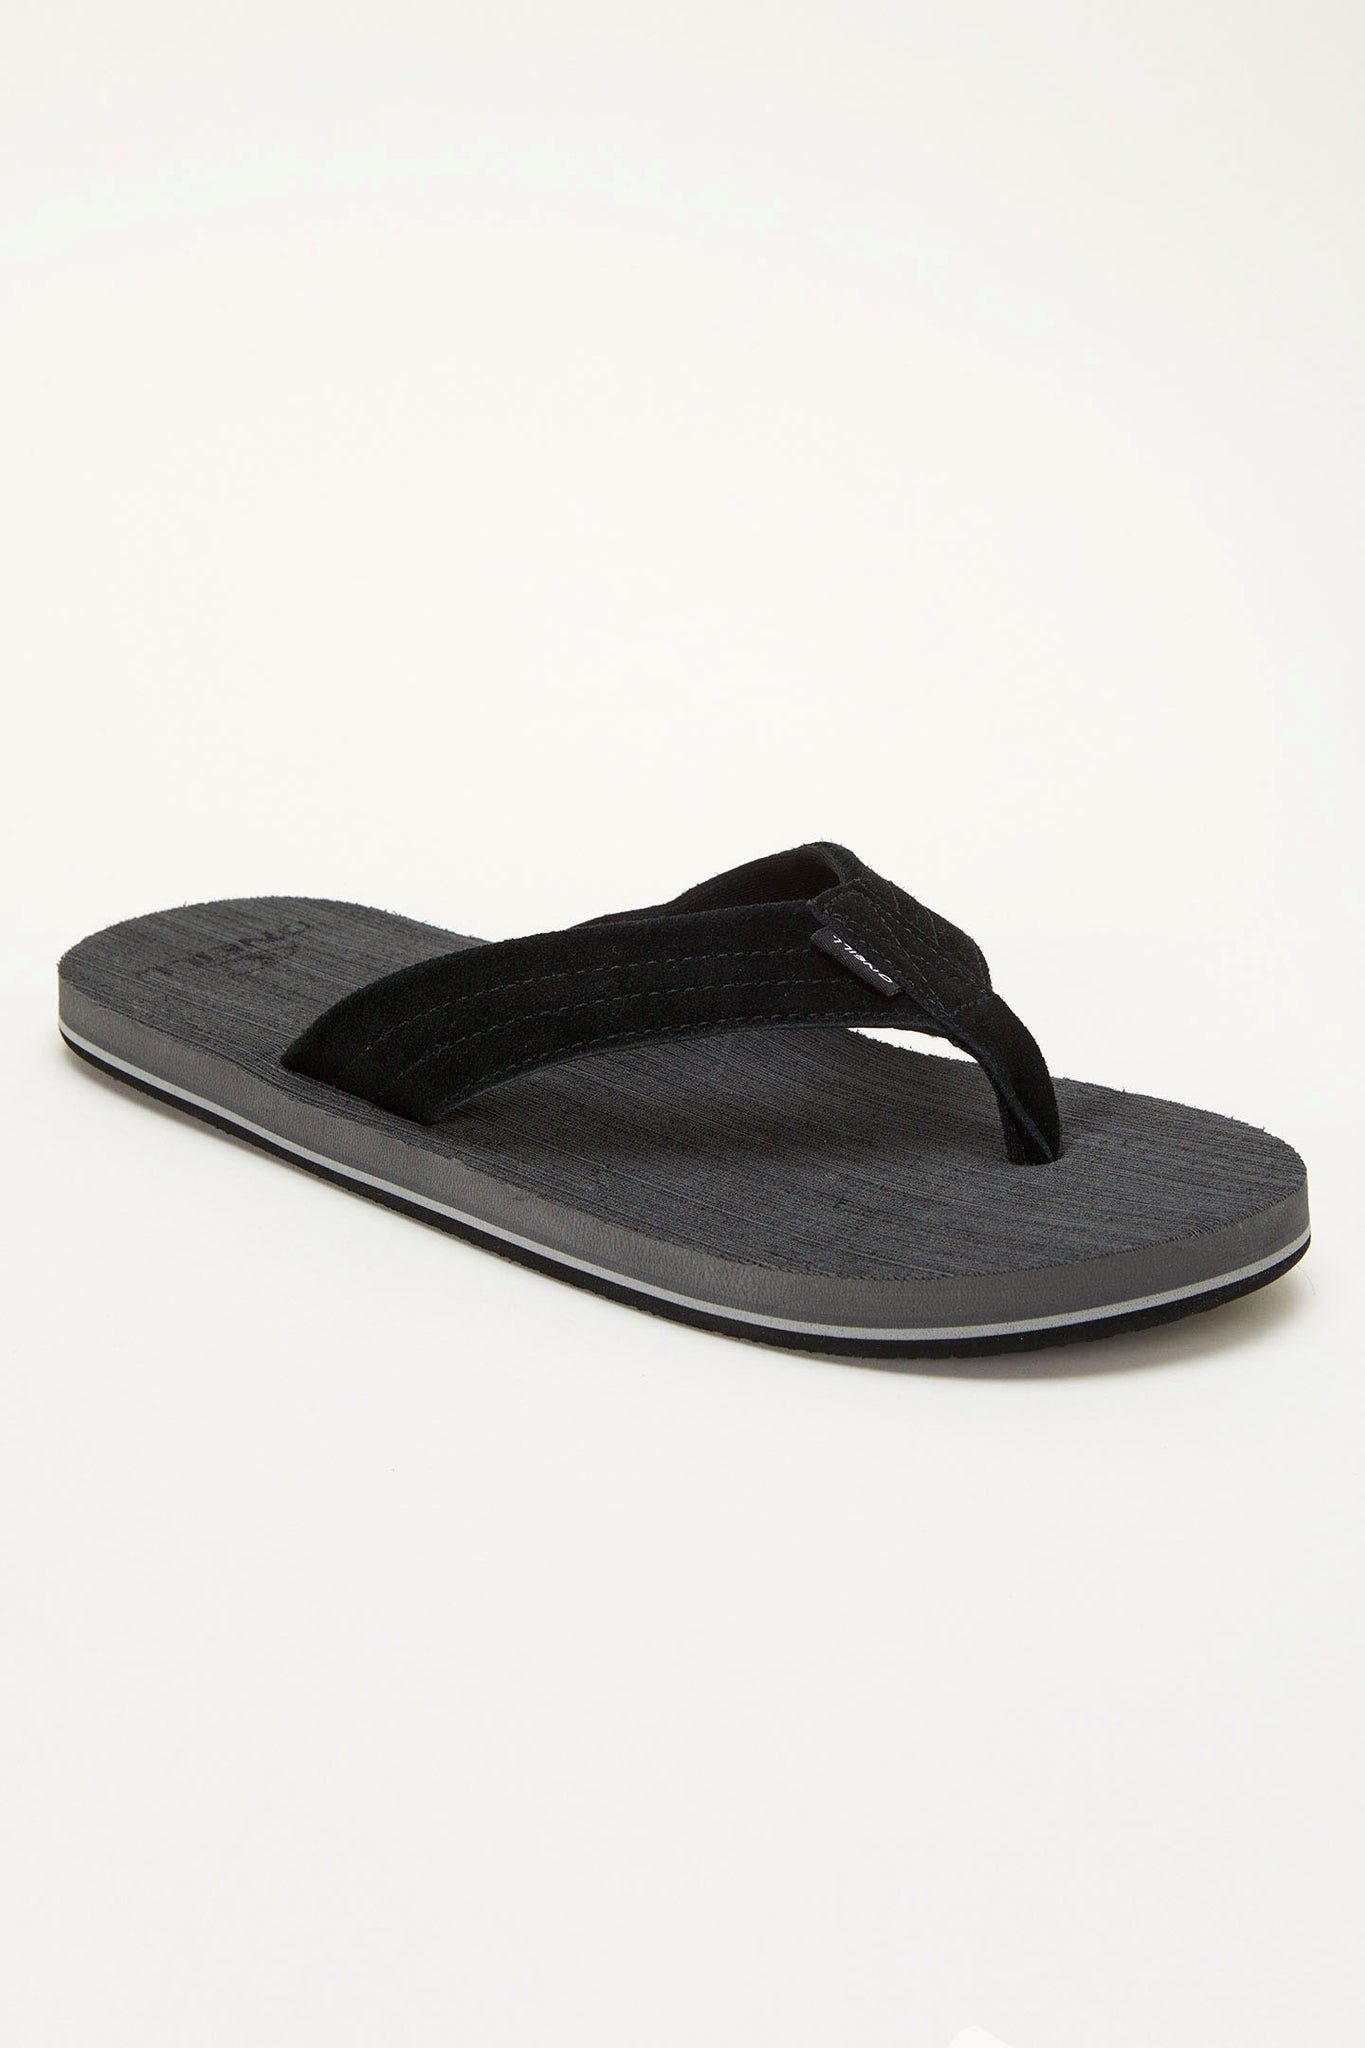 Doheny Sandals - Black | O'Neill